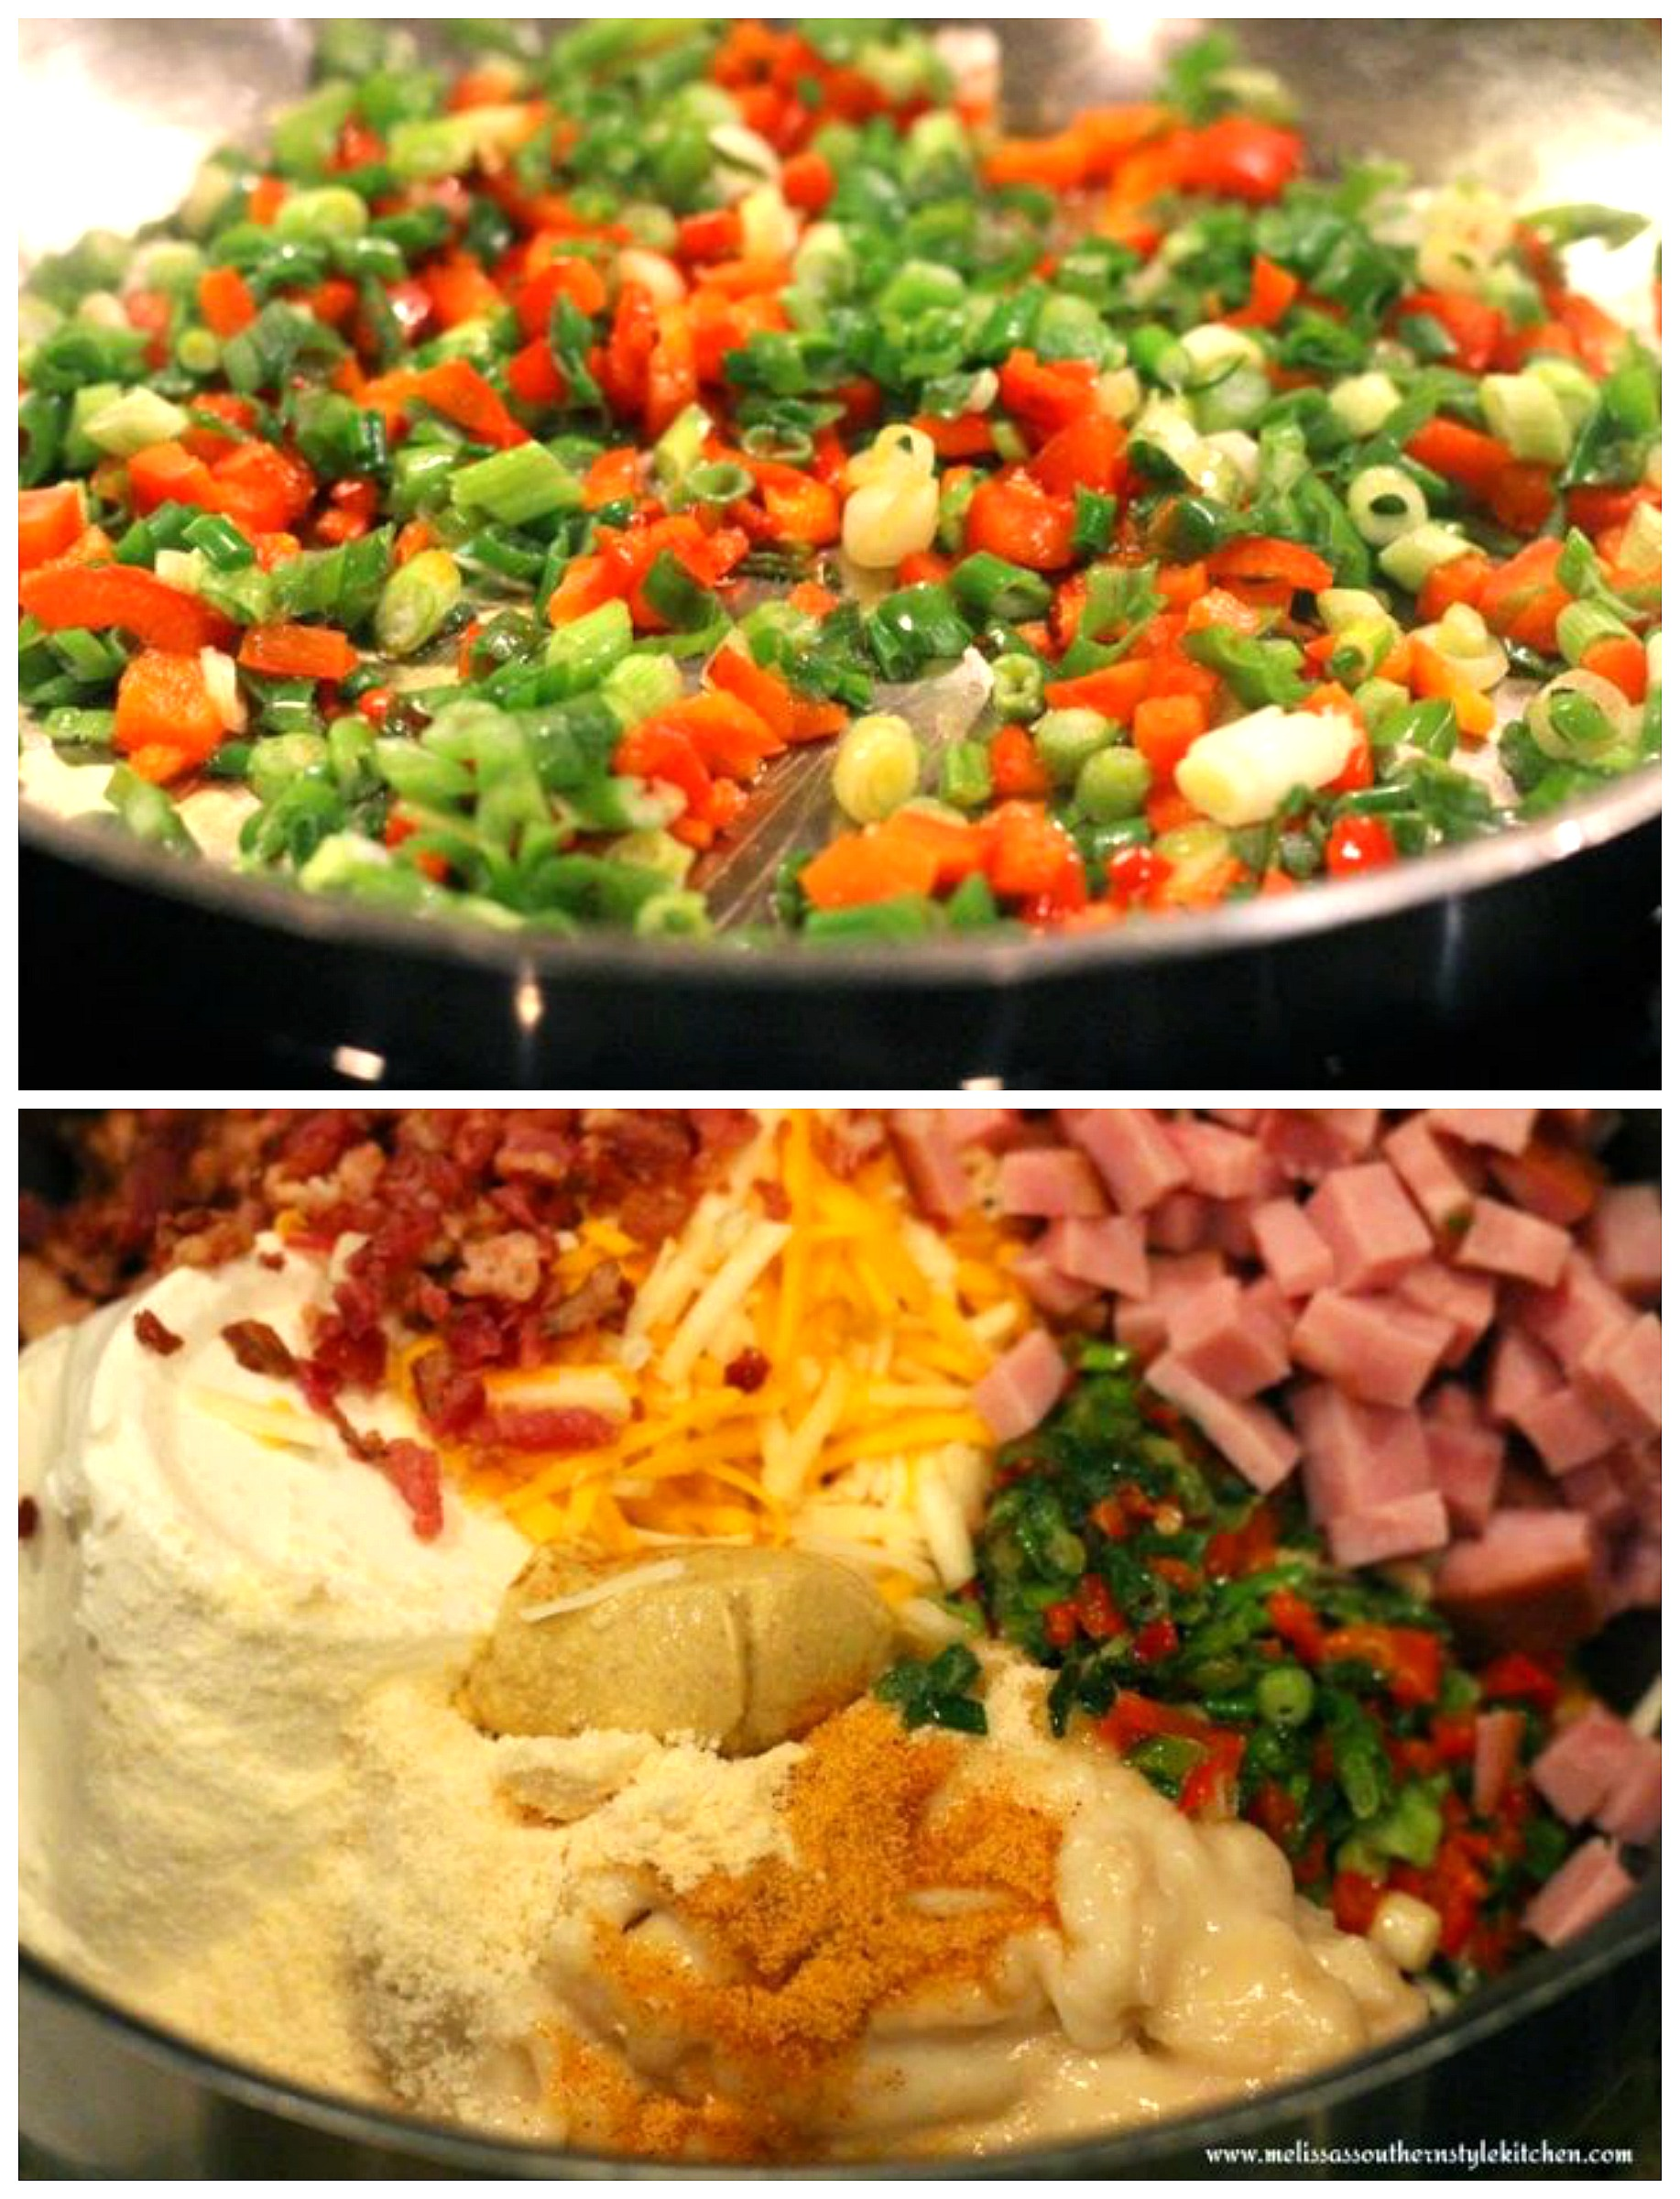 step-by-step preparation images hash browns, ham cooked vegetables in mixing bowl